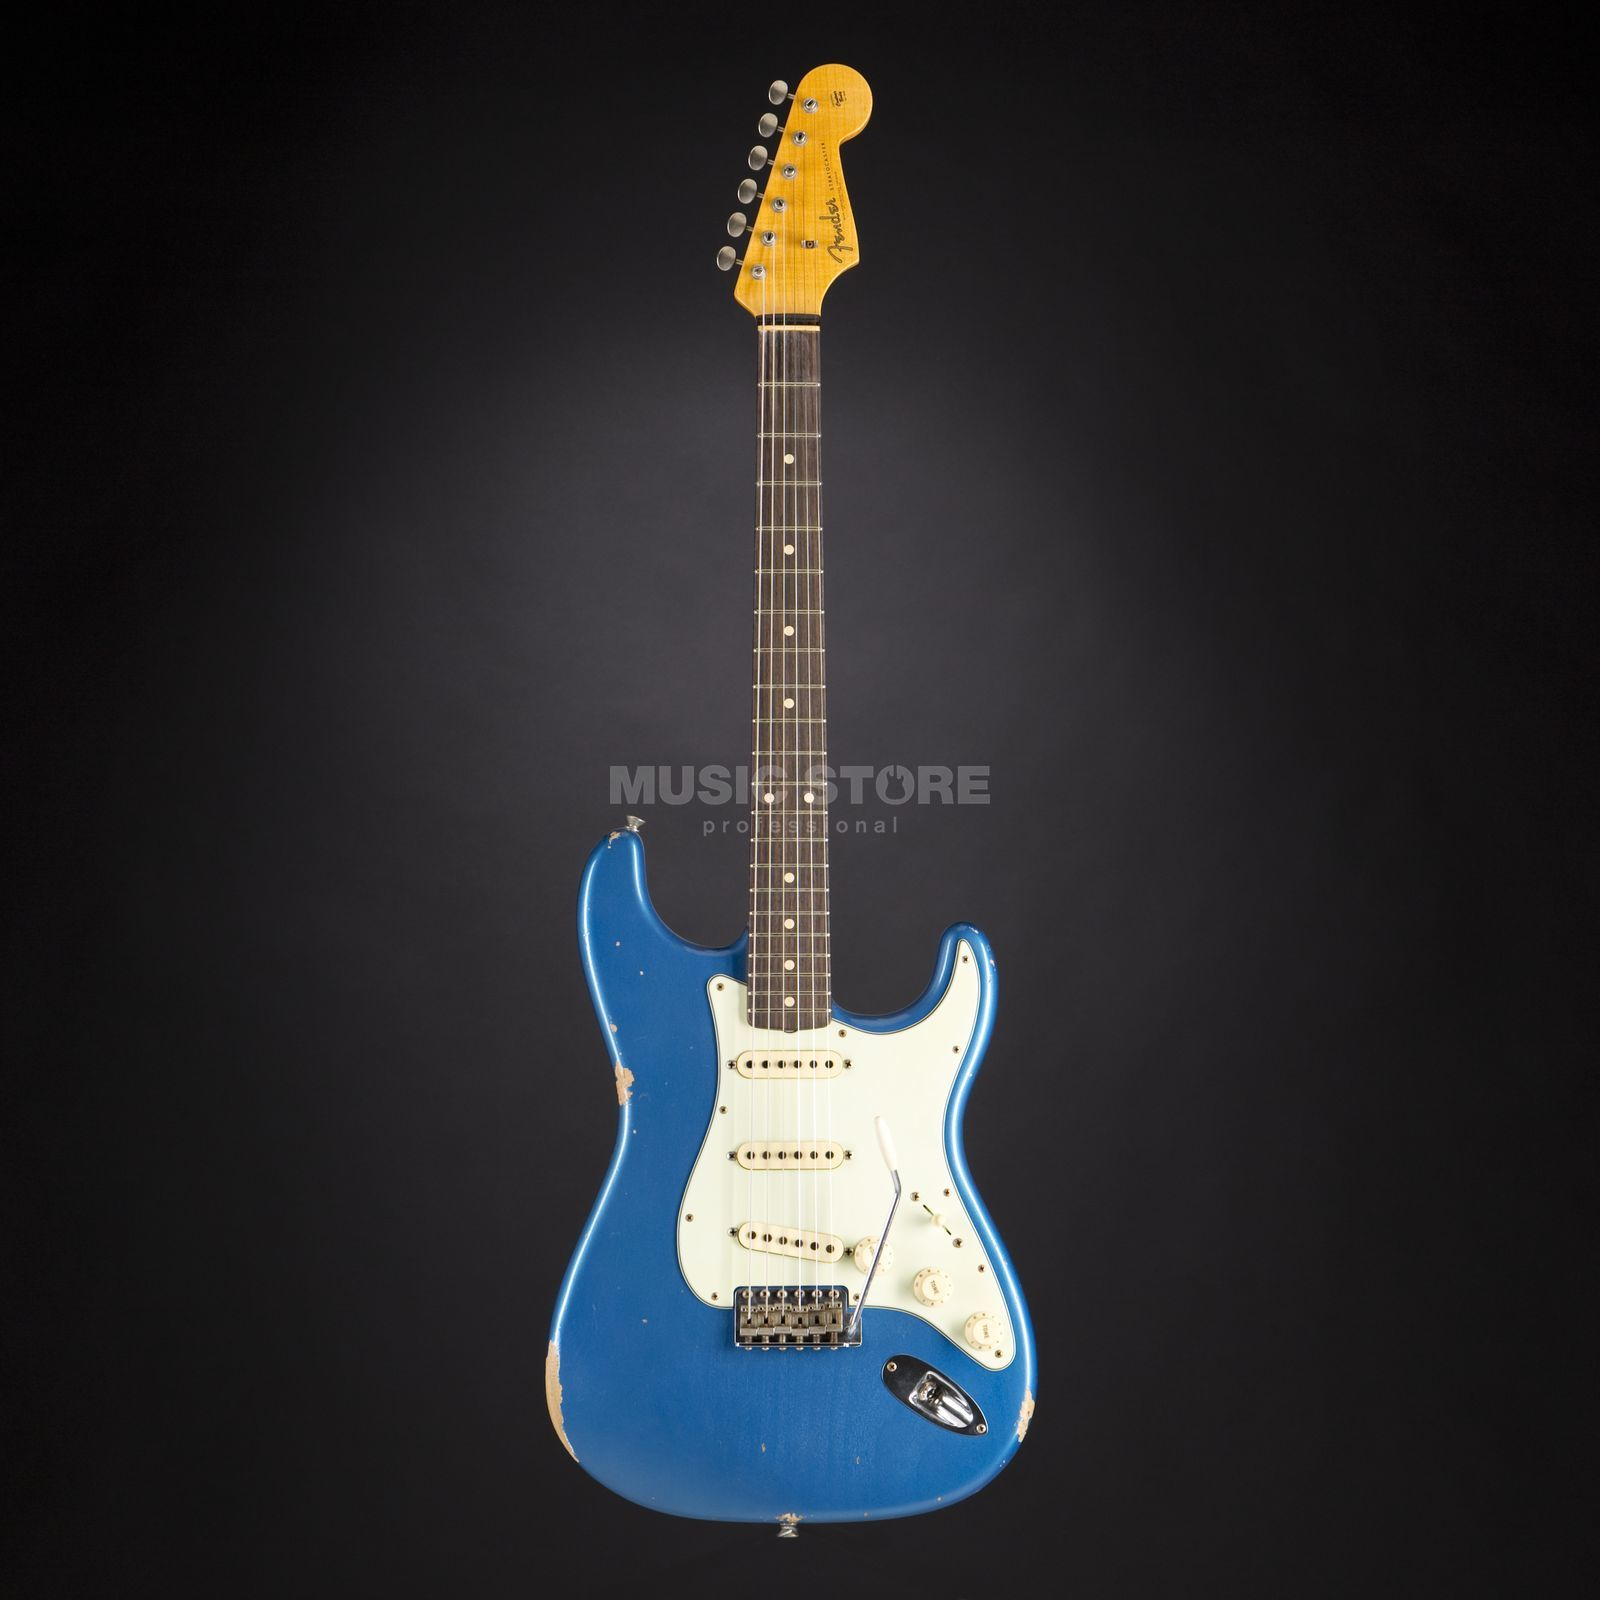 Fender 1961 Relic Stratocaster Aged Lake Placid Blue #CZ526828 Product Image